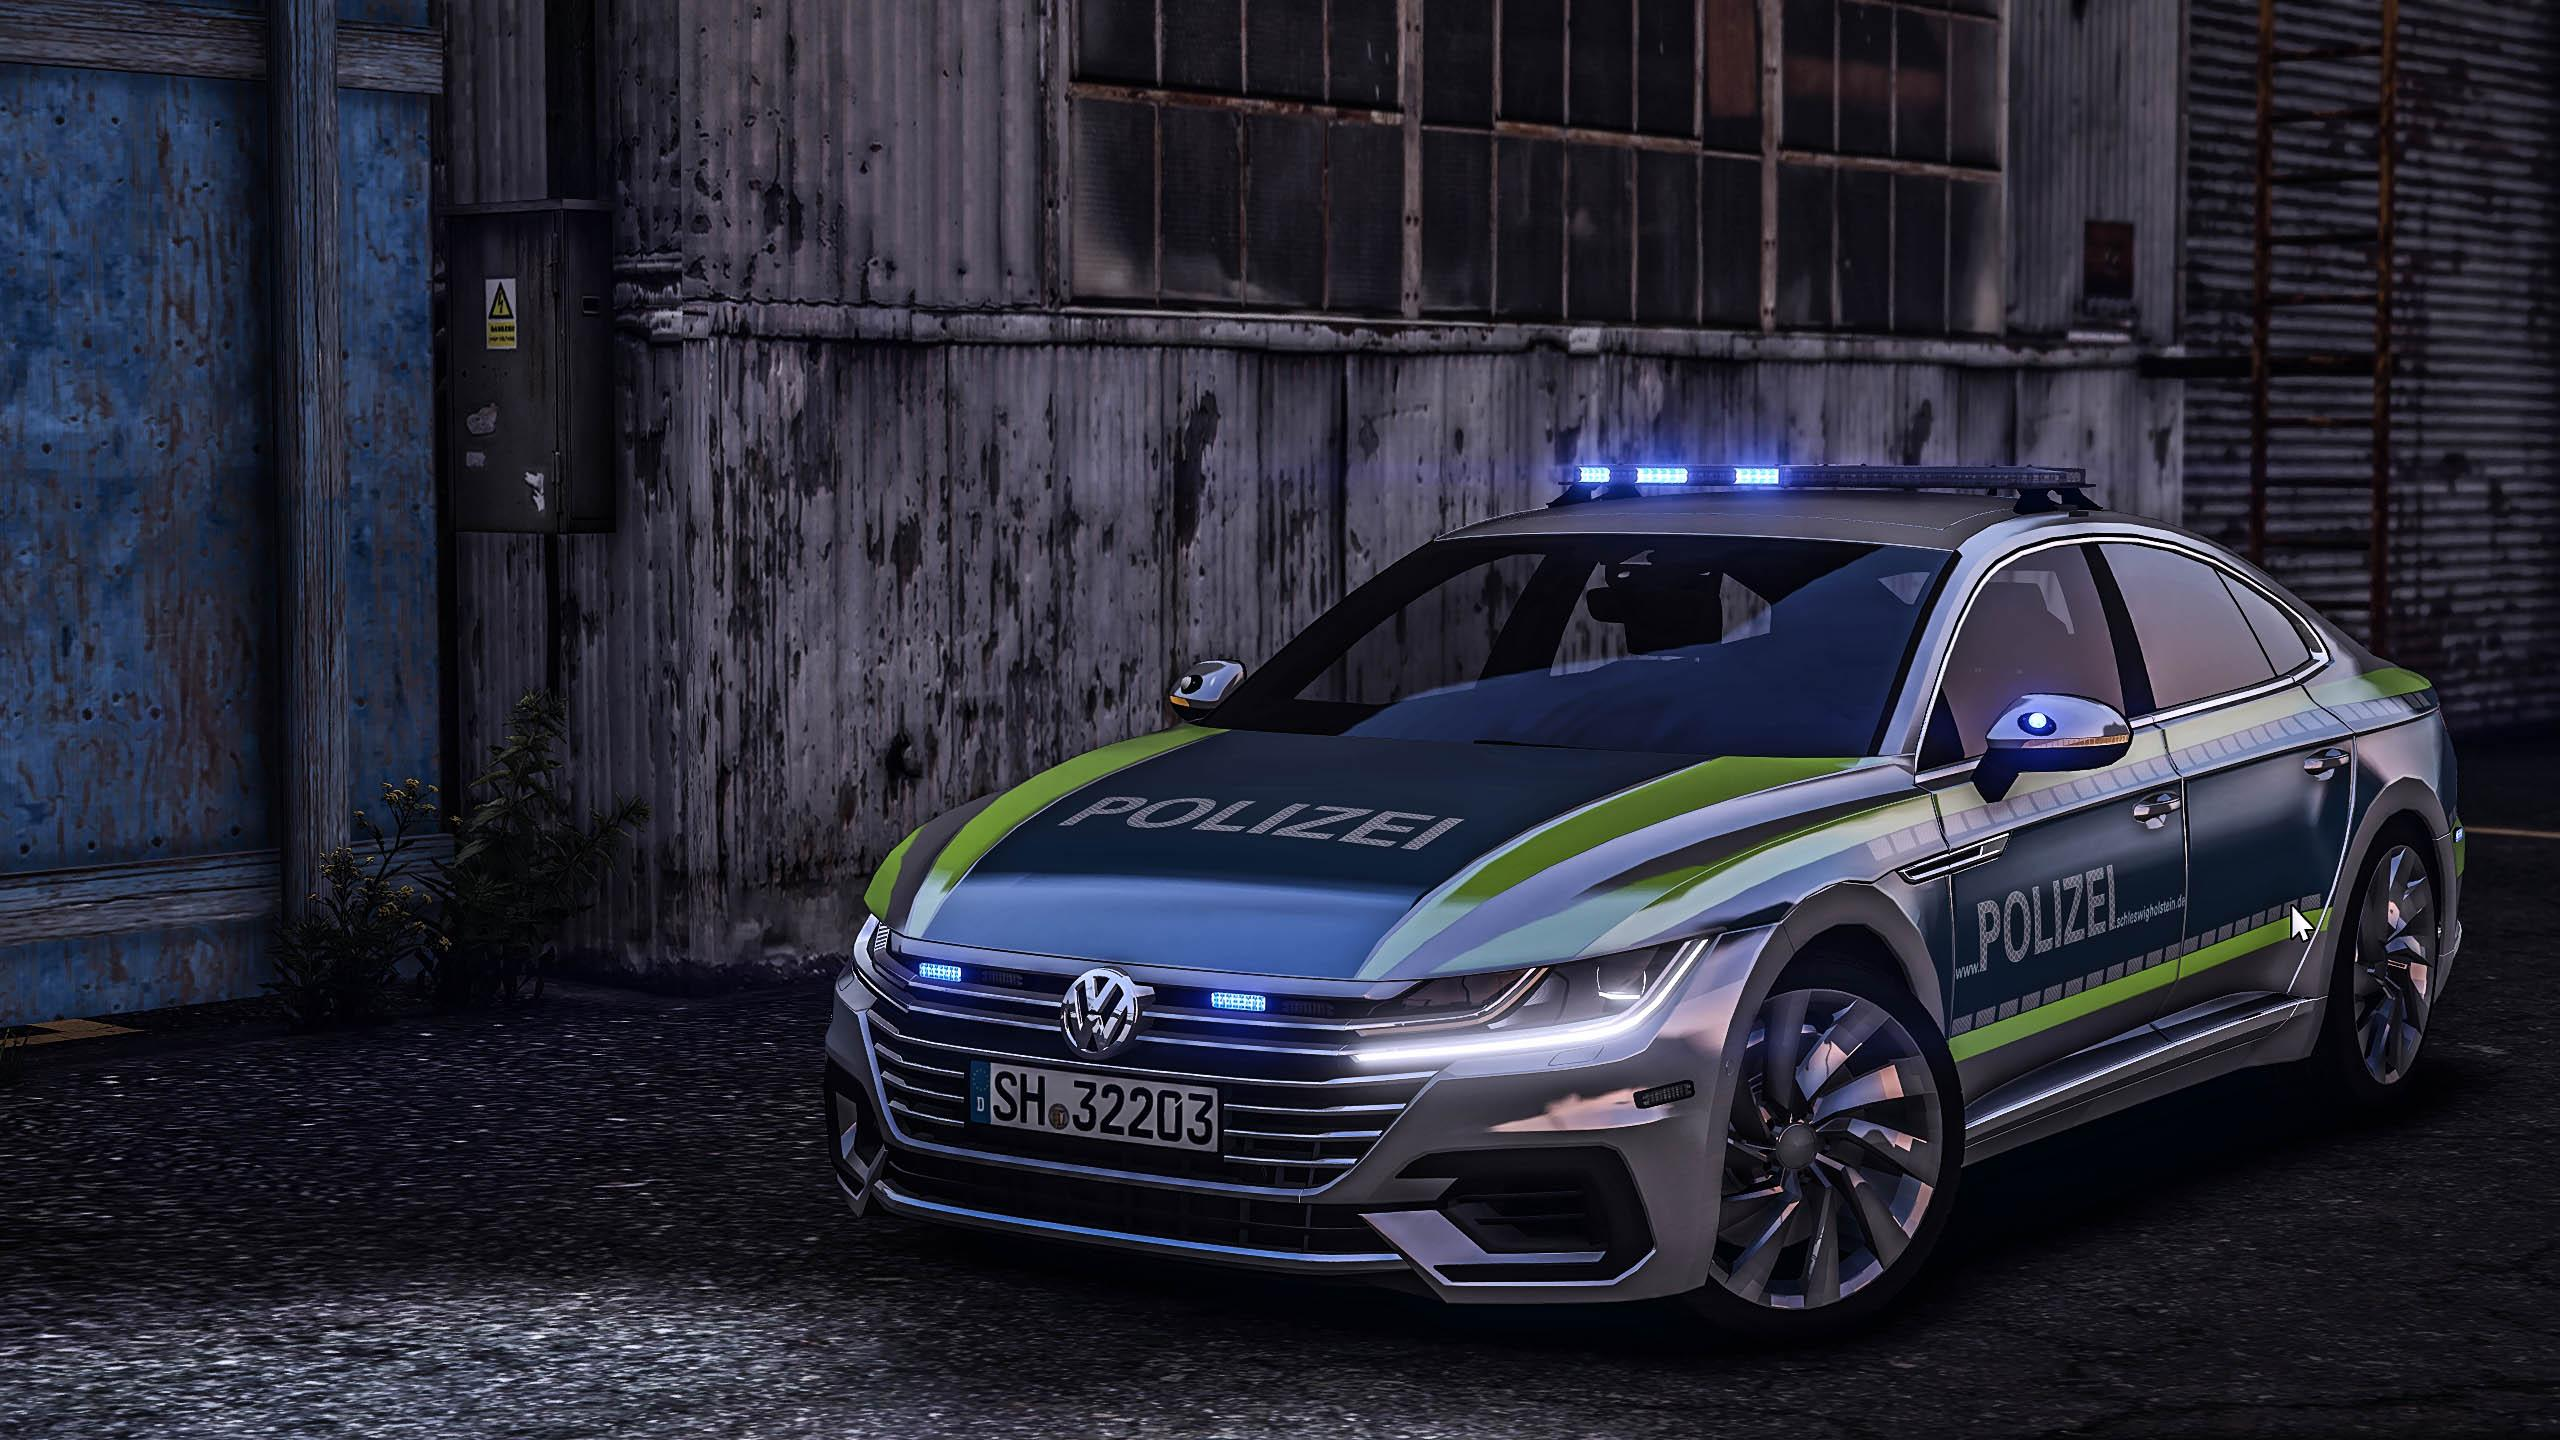 Gta 5 Cars Wallpaper Download Arteon Skins Polizei Hamburg And Schleswig Holstein Gta5